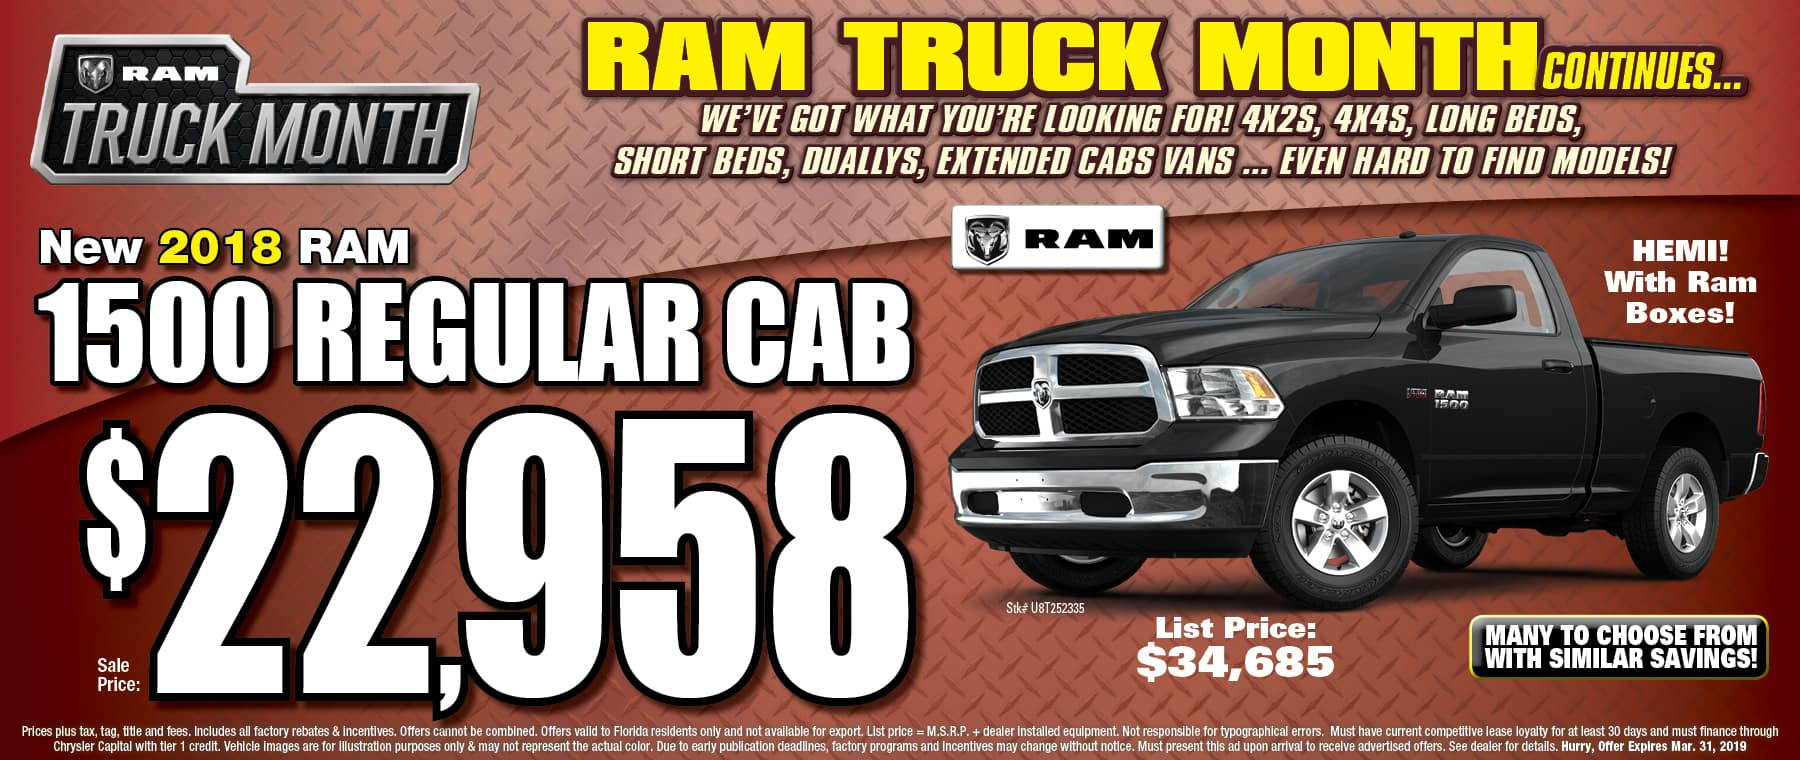 New 2018 Ram Regular Cab!